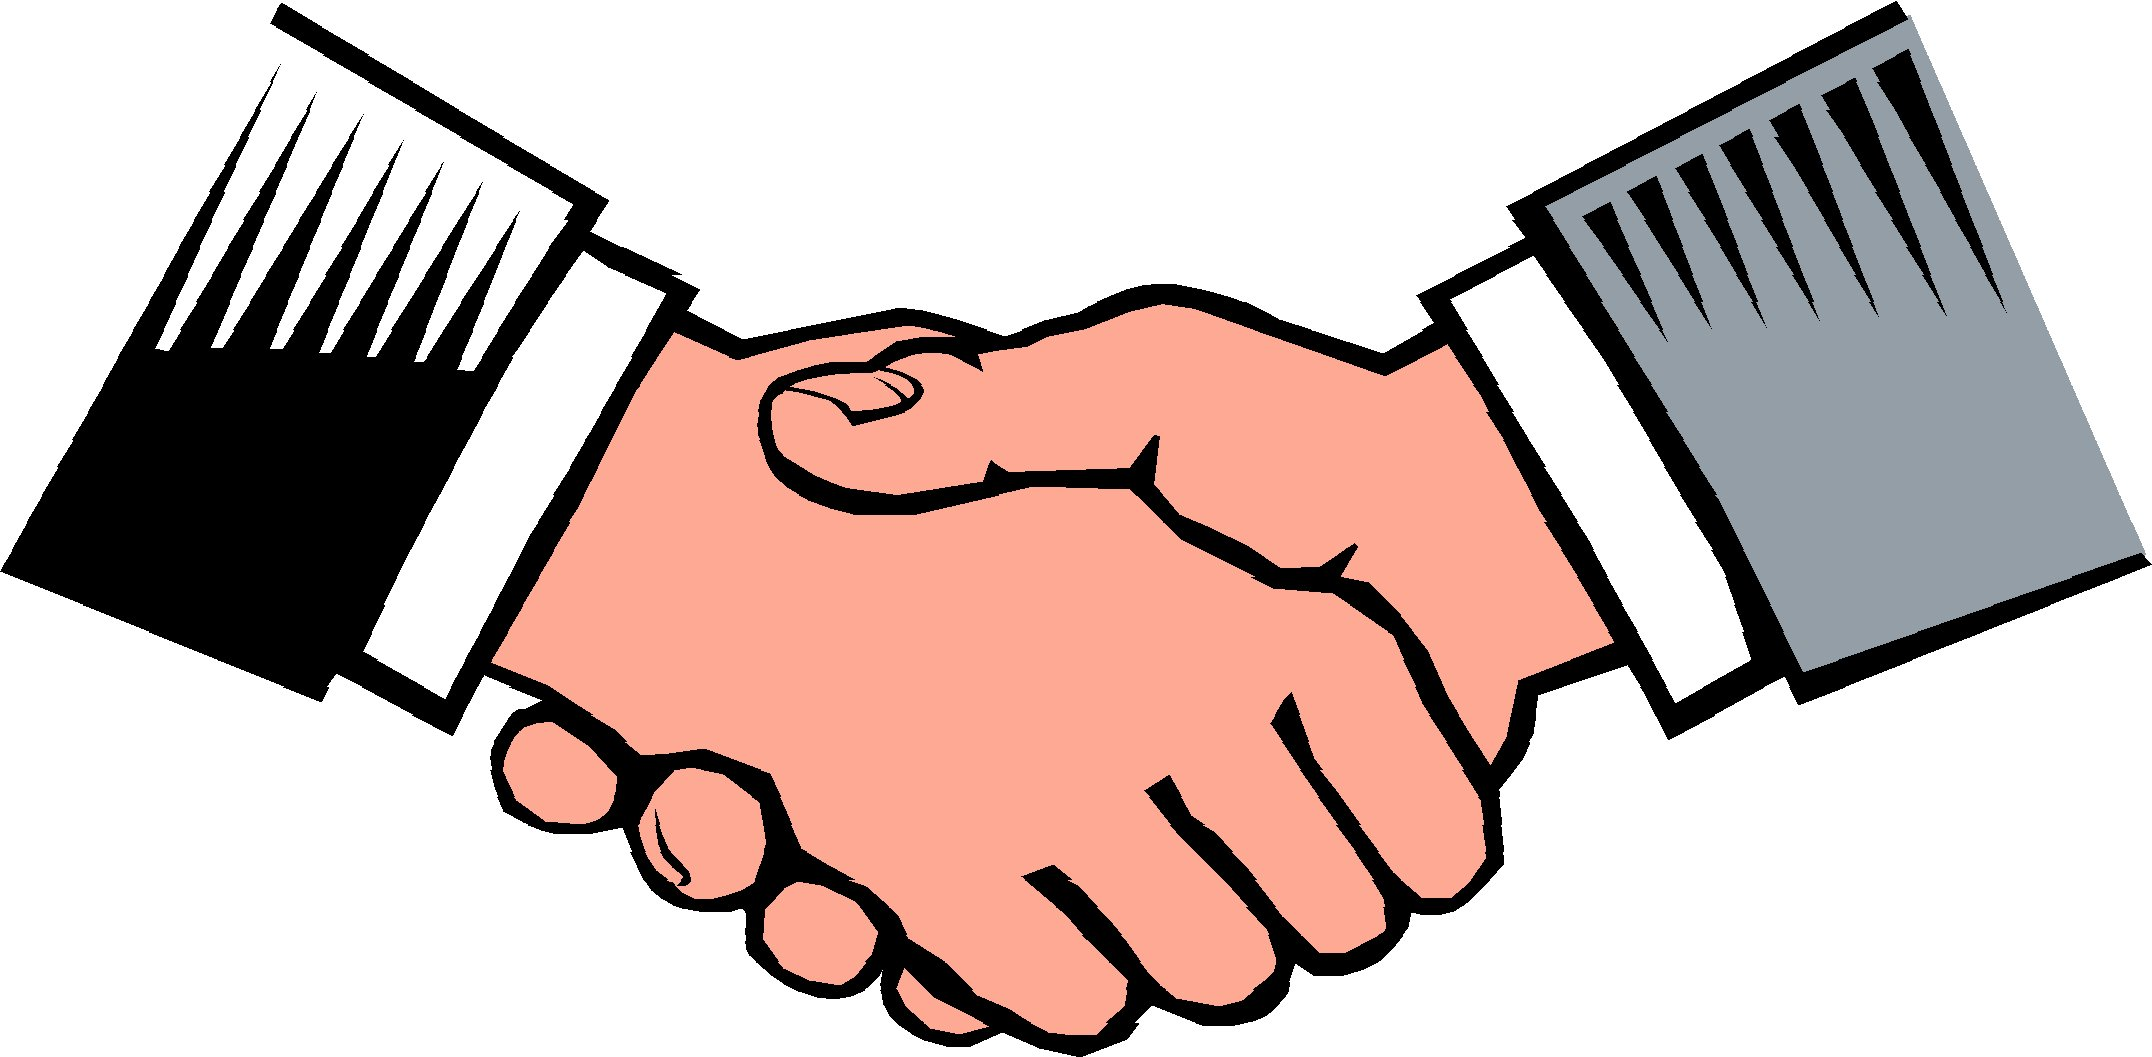 Business clipart hand shaking Clipart Shaking Hands Shaking Two